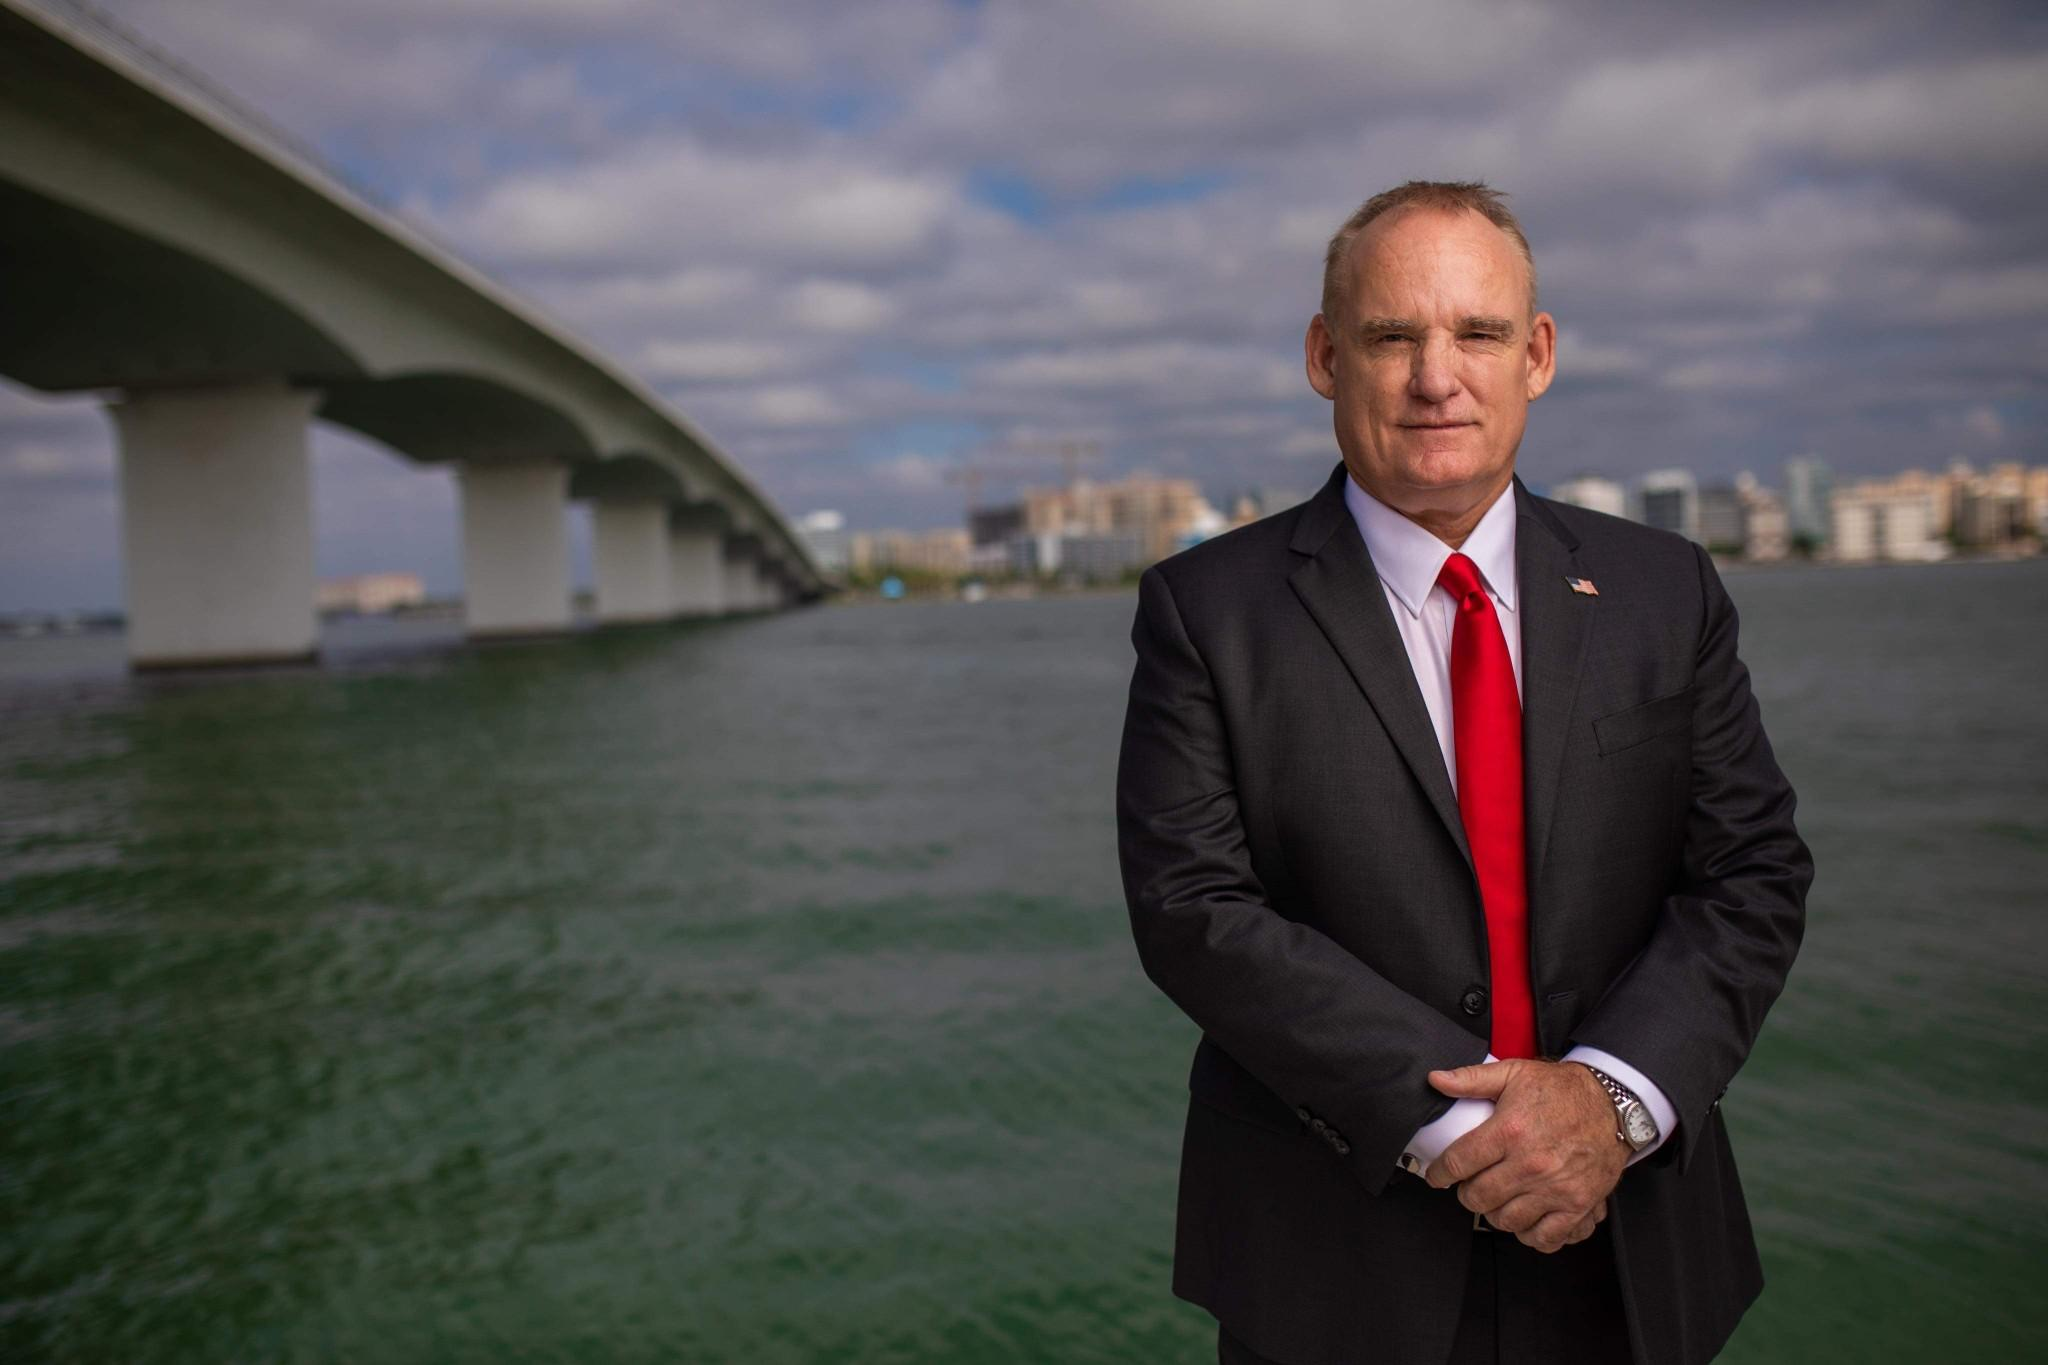 Florida Politician Allegedly Offered Latino Teen $50K to Delete Video of Him on Racist Rant